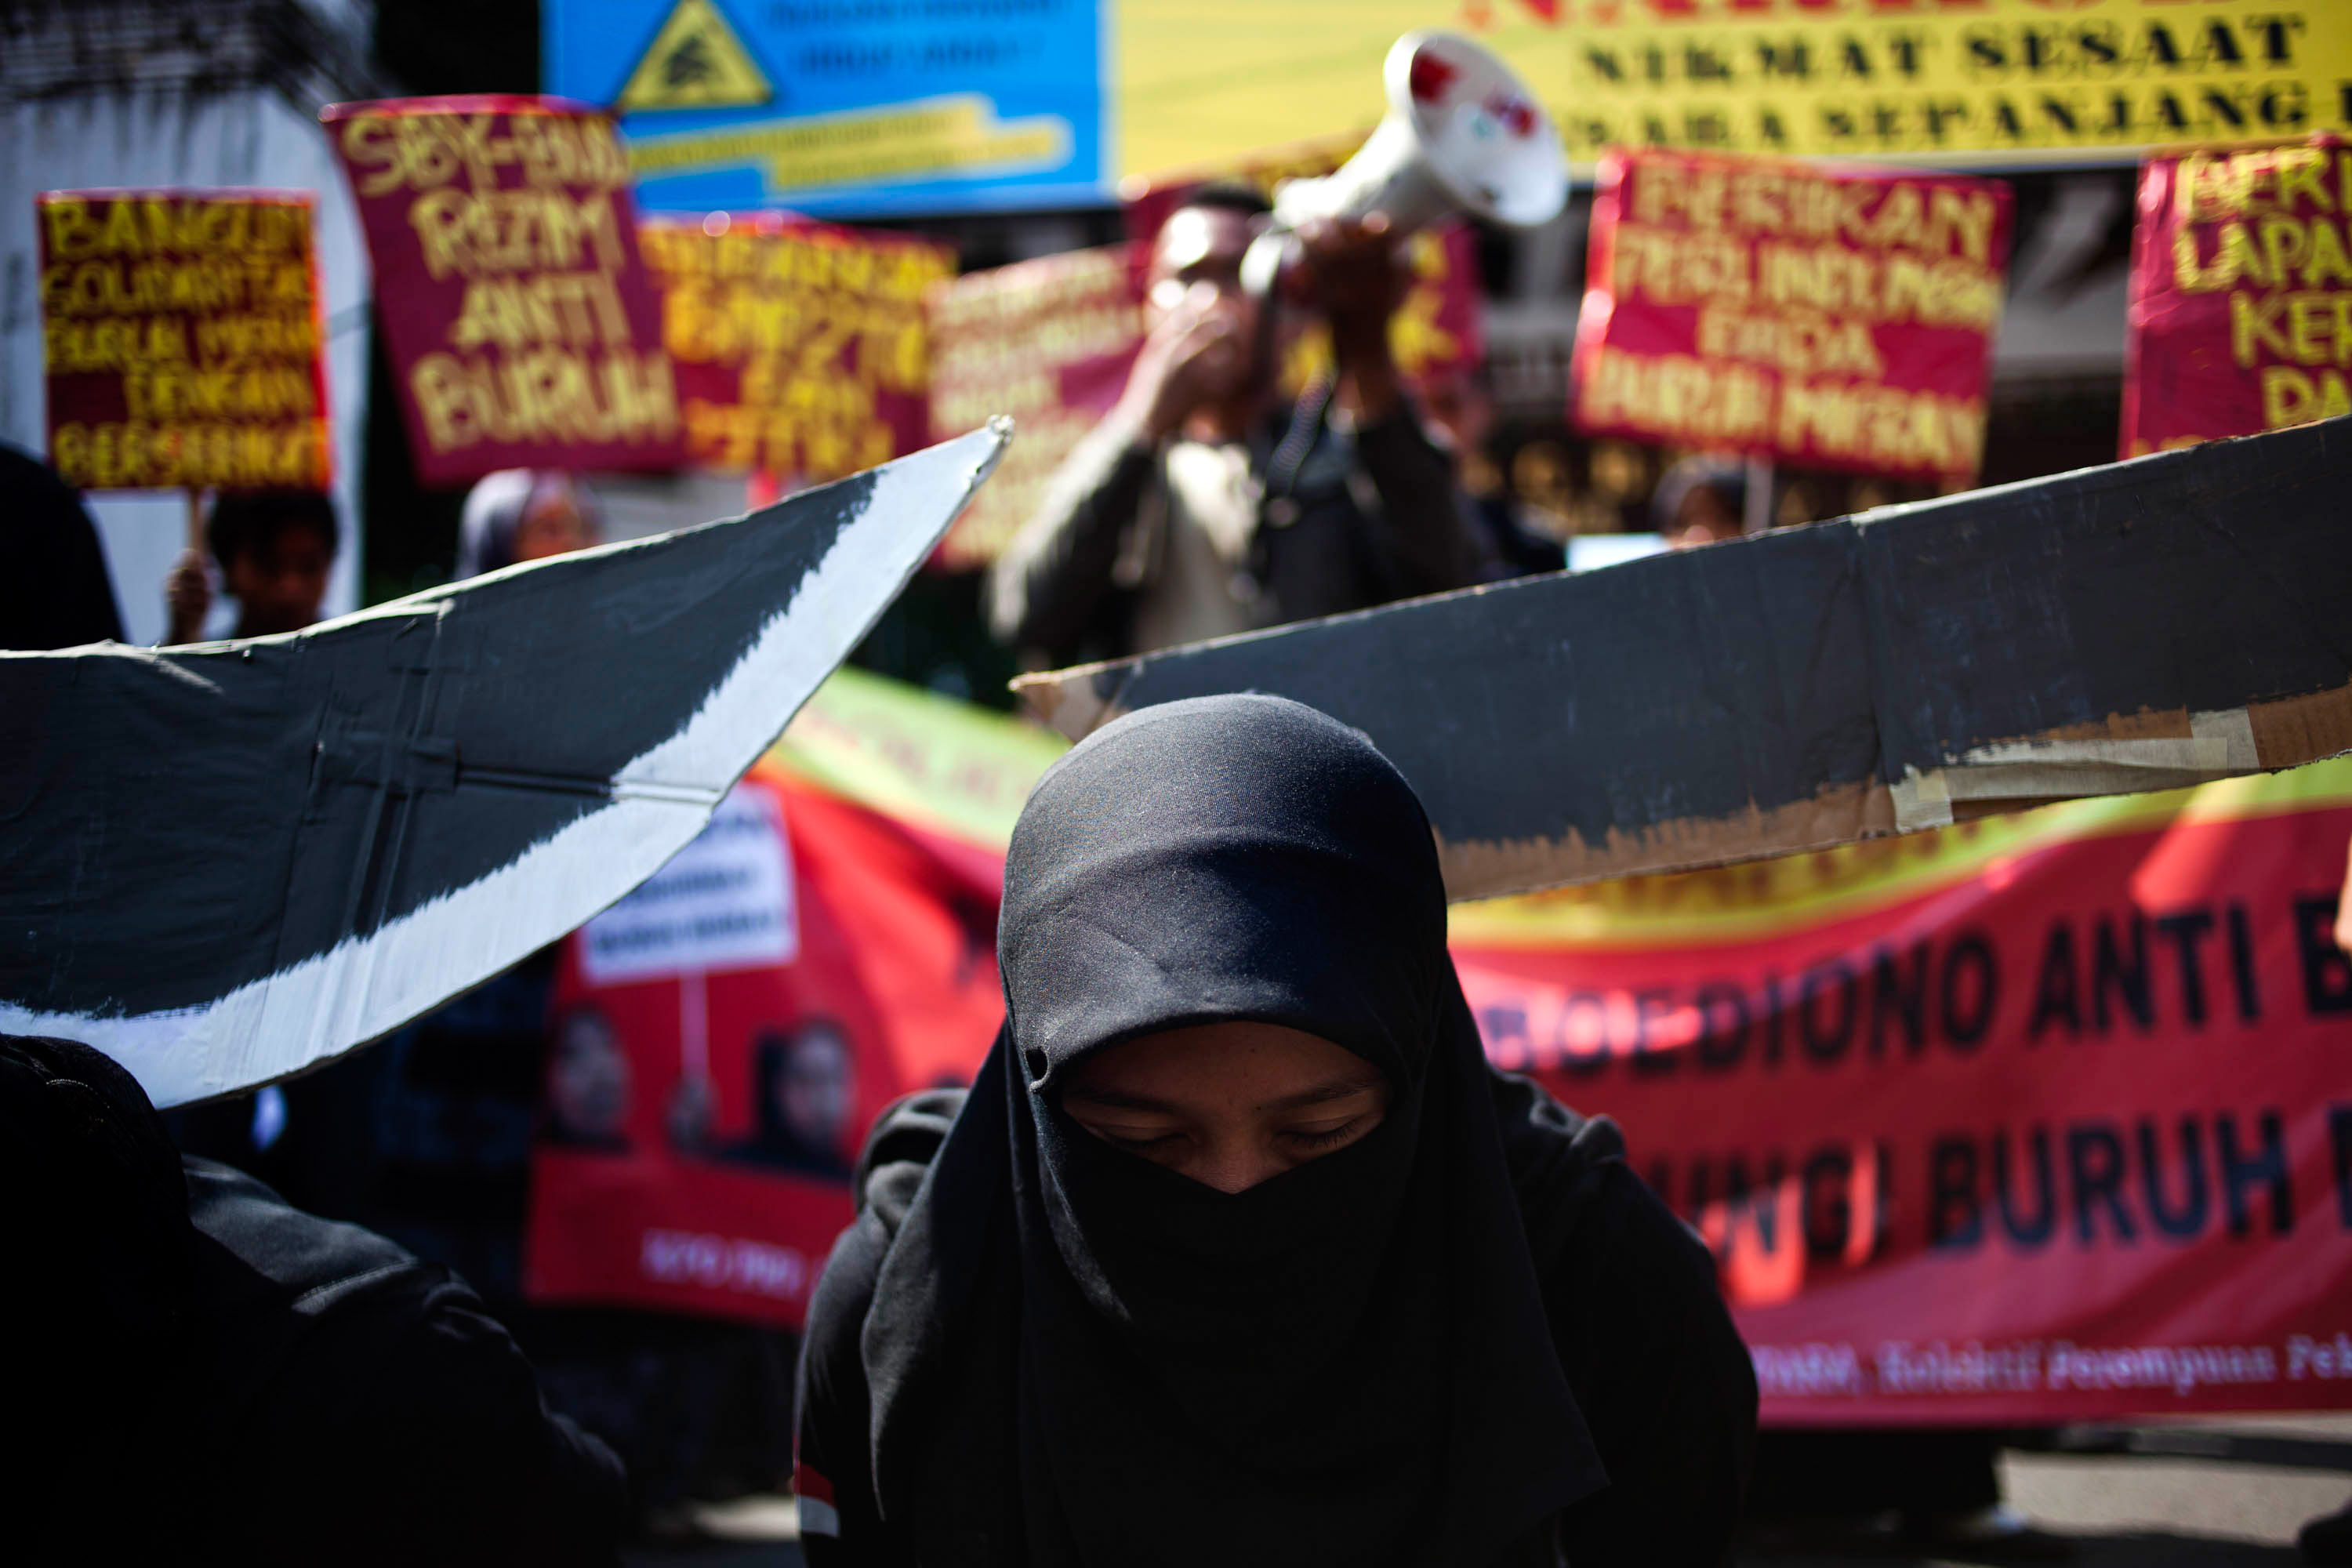 Protesters demonstrate in front of the Presidential Palace claiming the Indonesian Government is failing to protect its migrant workers following the recent execution of an Indonesian maid in Saudi Arabia, on June 24, 2011, in Yogyakarta, Indonesia. (Getty Images)